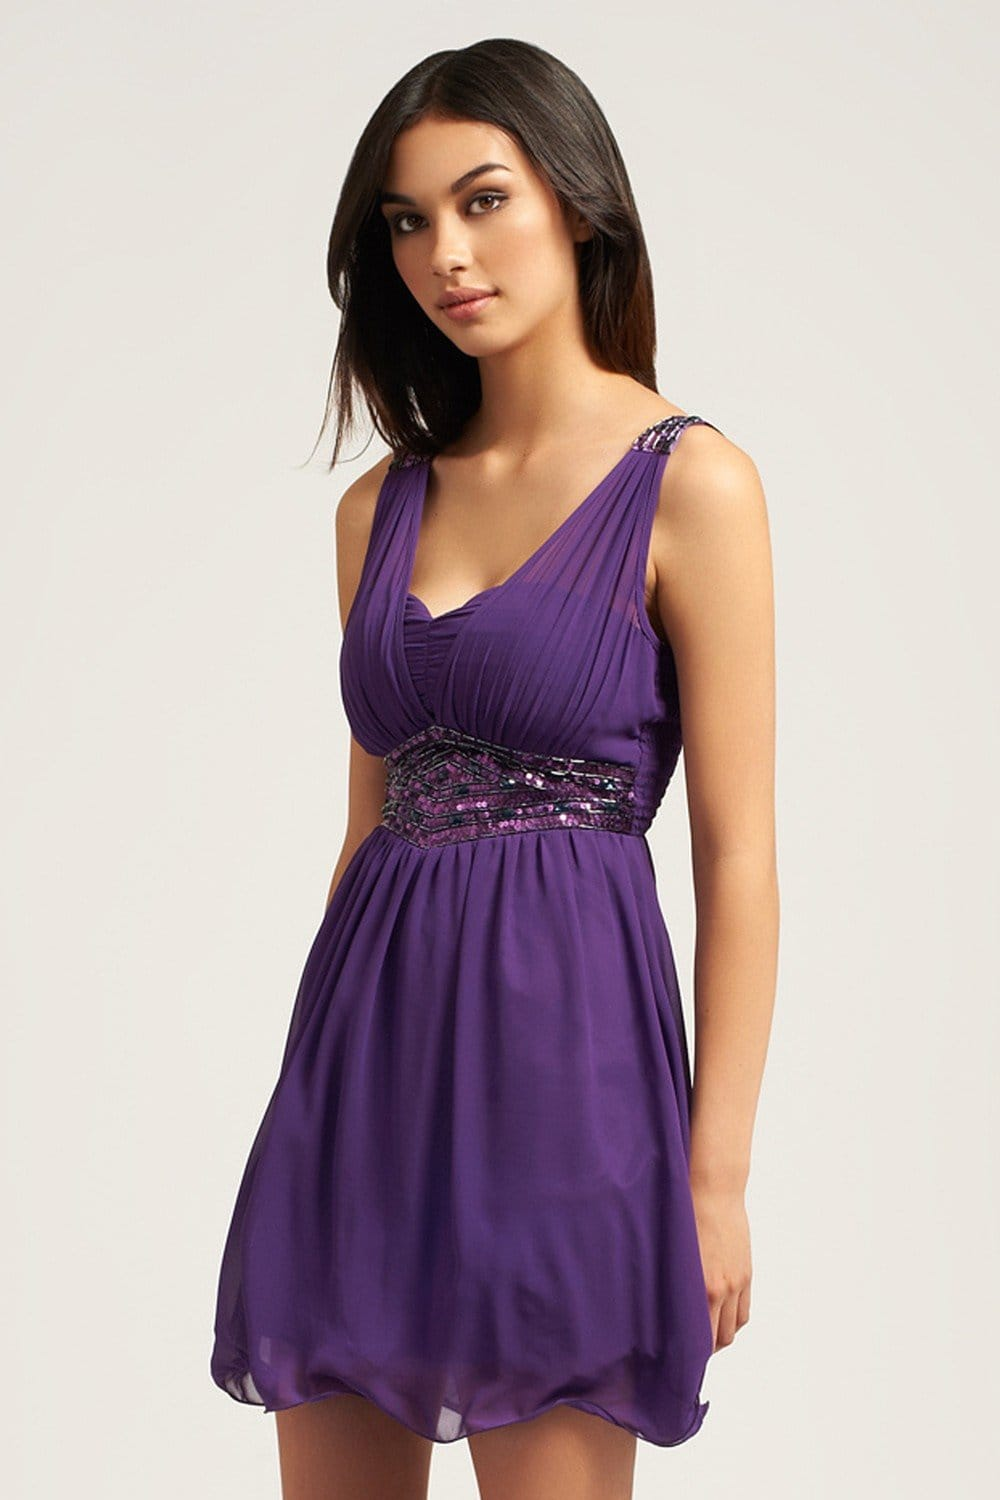 14 50 Outlet >> Little Mistress Purple Embellished Chiffon Overlay Dress